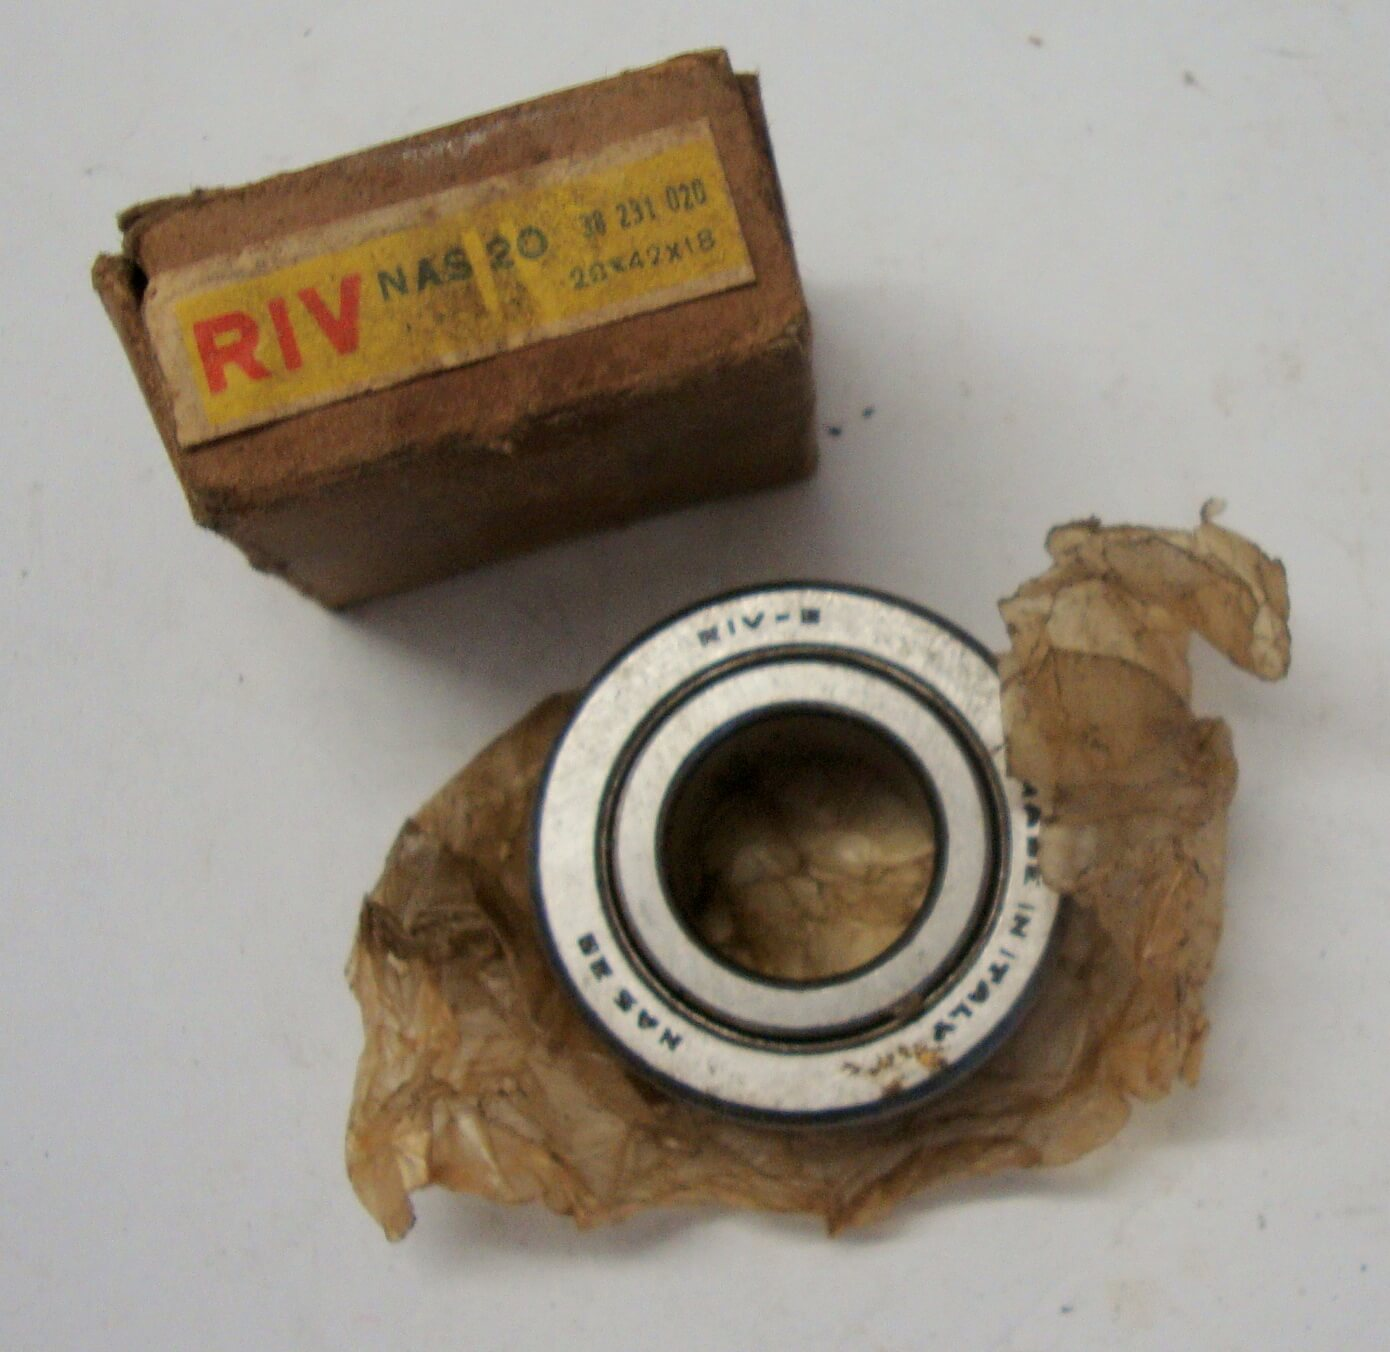 Bearing for drive shaft, wheel side, RIV, Vespa GS 150 / GS 1>3, NOS